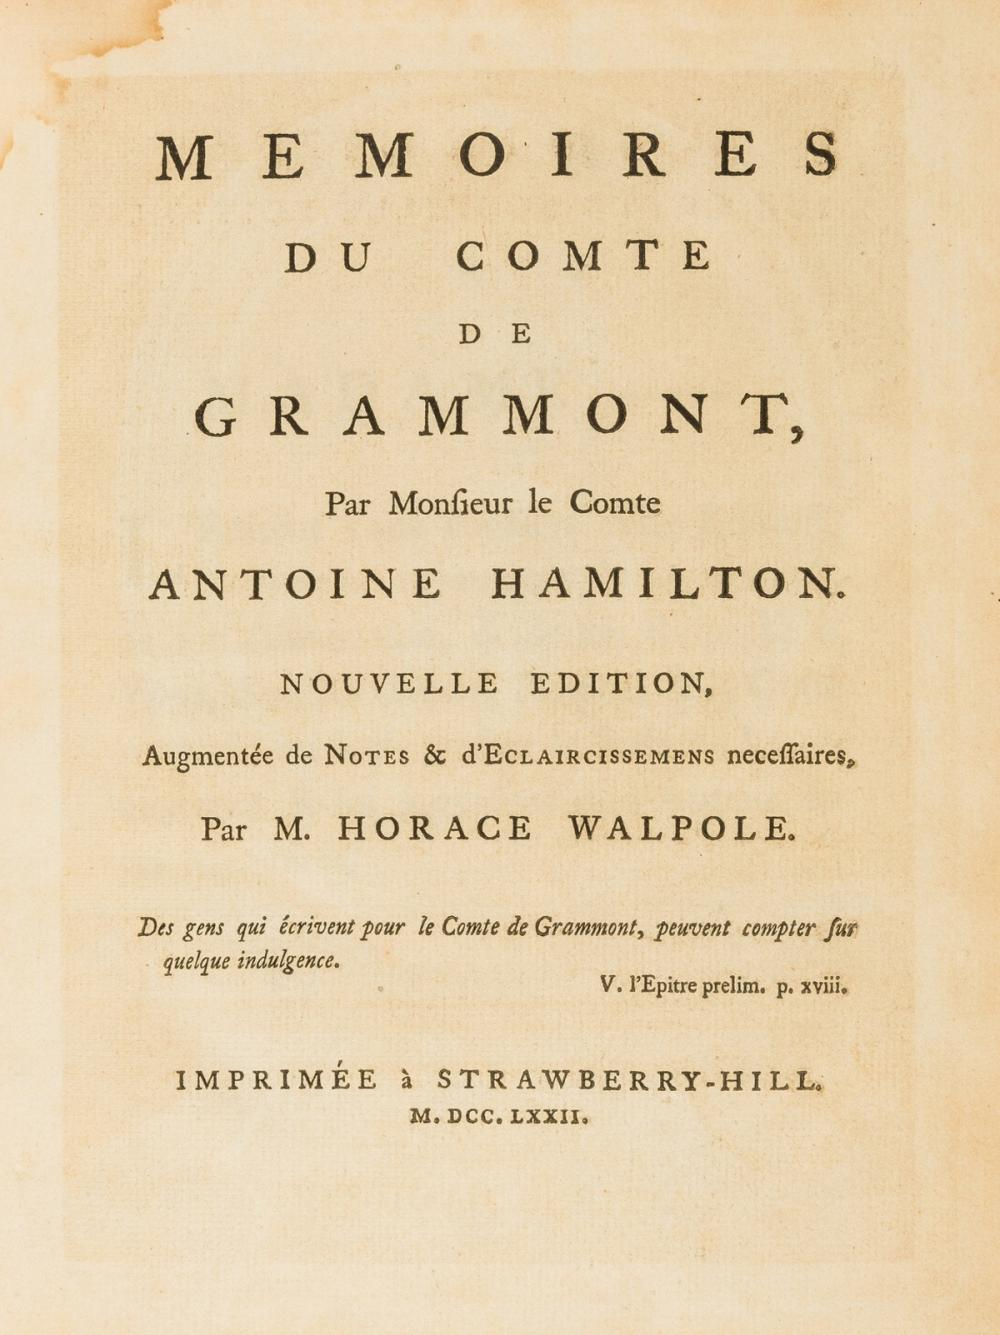 Walpole (Horace, 4th Earl of Orford).- Hamilton (Anthony) Memoires du Comte de Grammont, [one of 100 copies], Strawberry Hill Press, 1772 & Walpole's Works (8)